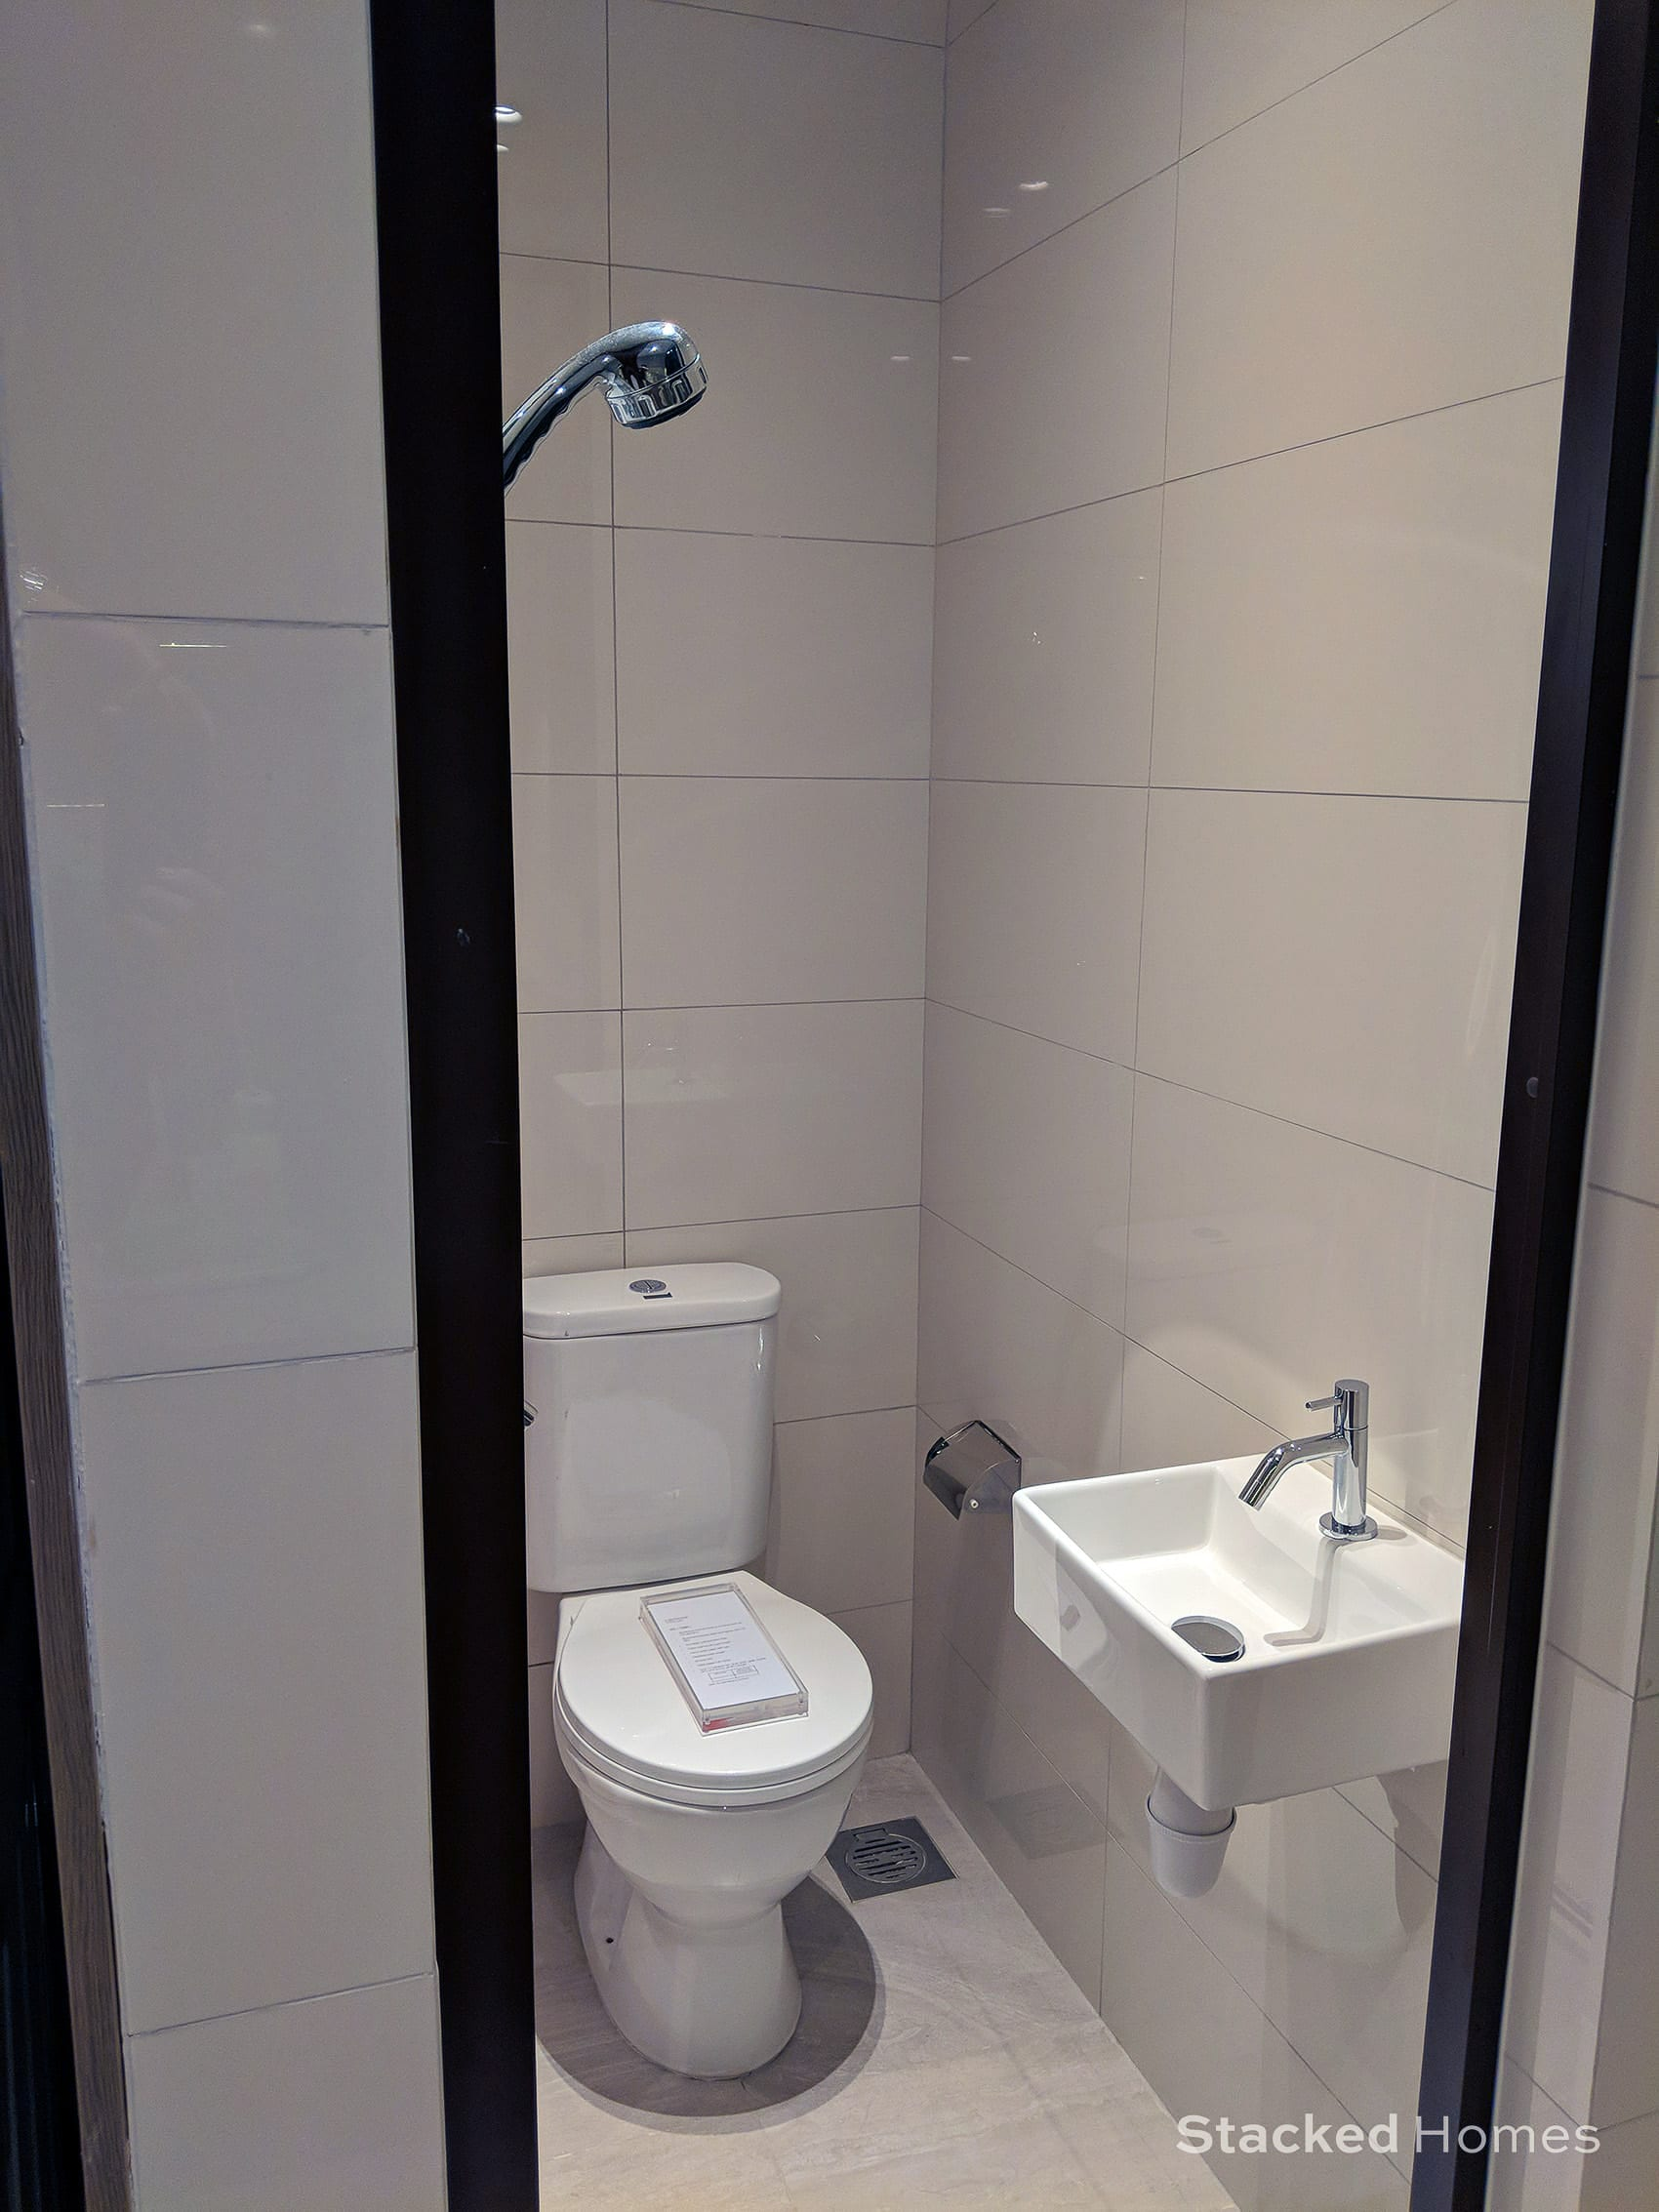 avenue south residence 3 bedroom toilet